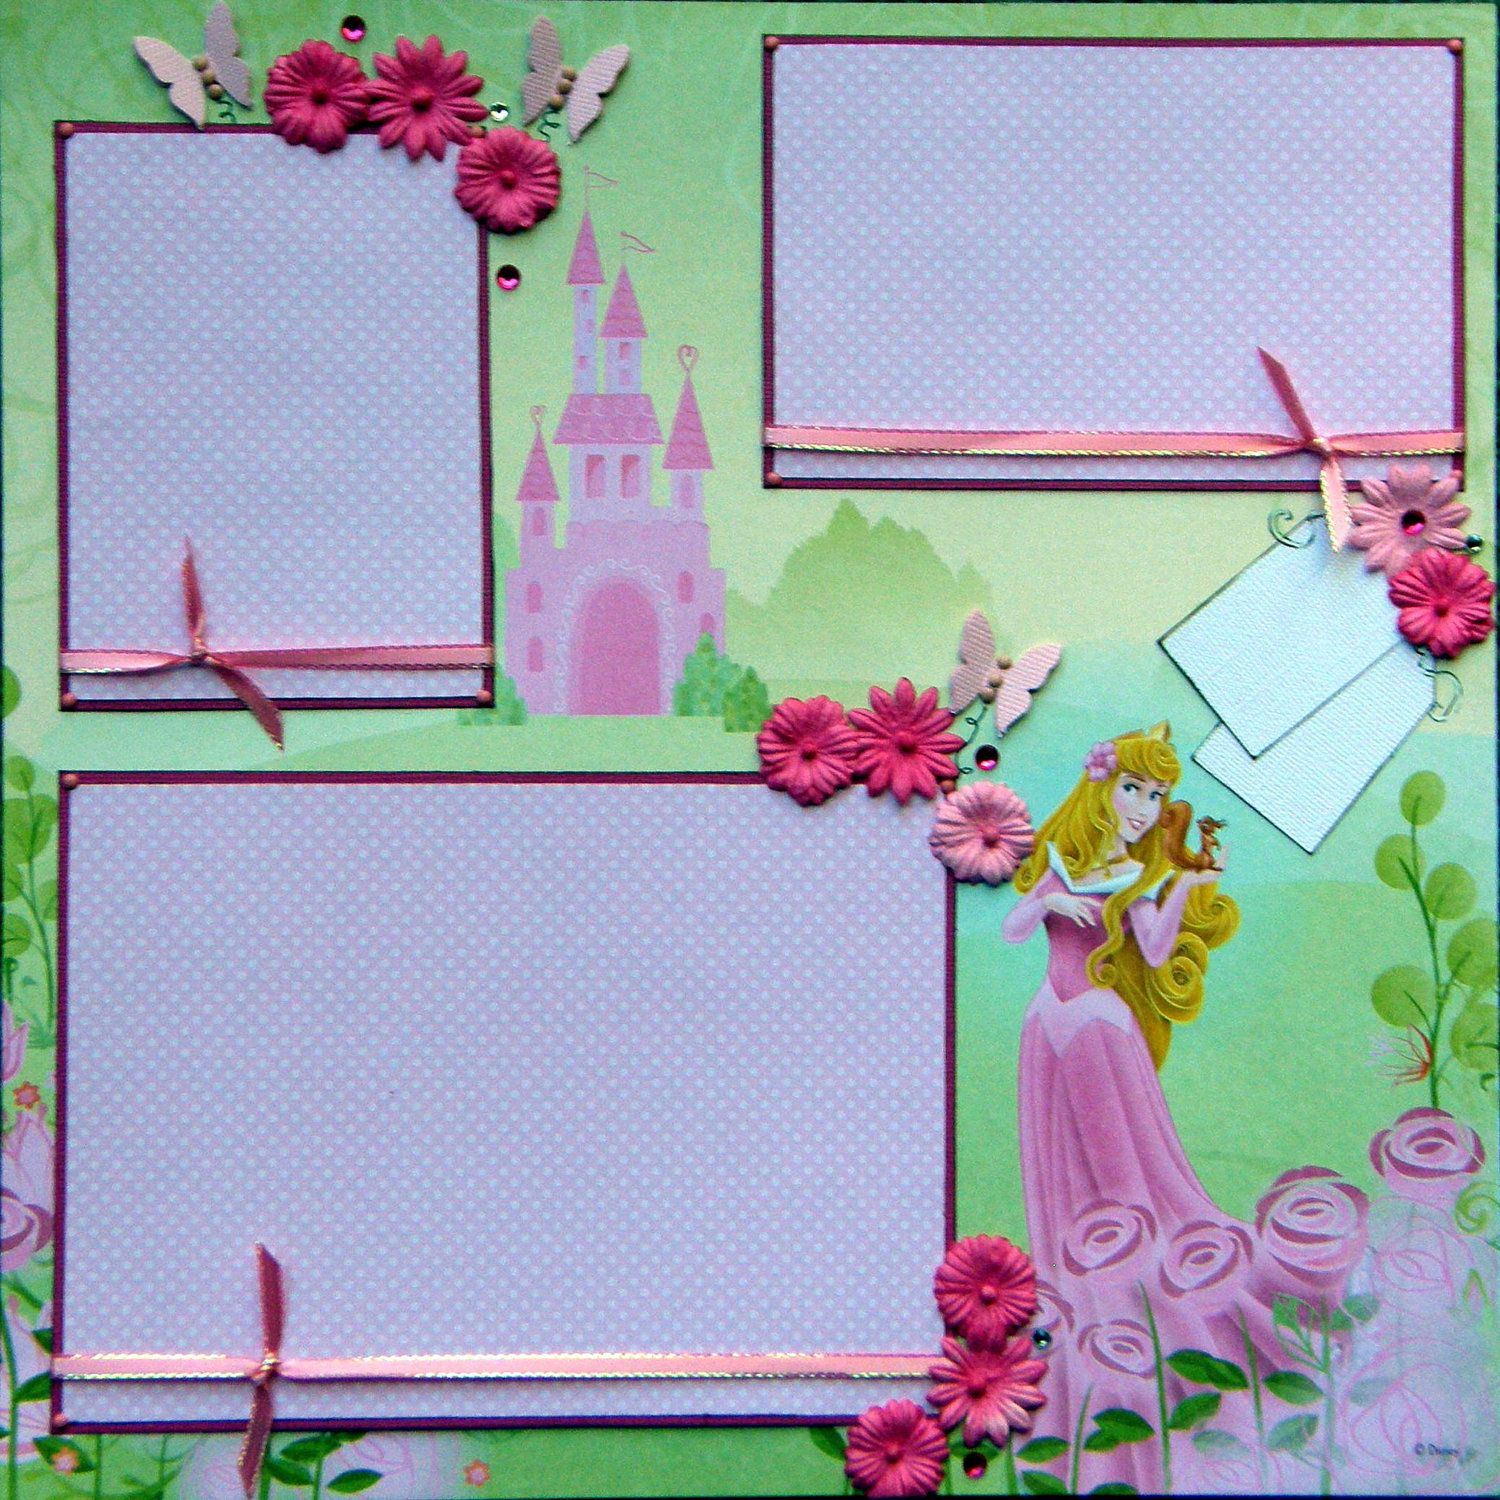 Scrapbook ideas names - 12x12 Premade Scrapbook Layout Featuring Disney S Aurora Add A Name For Free